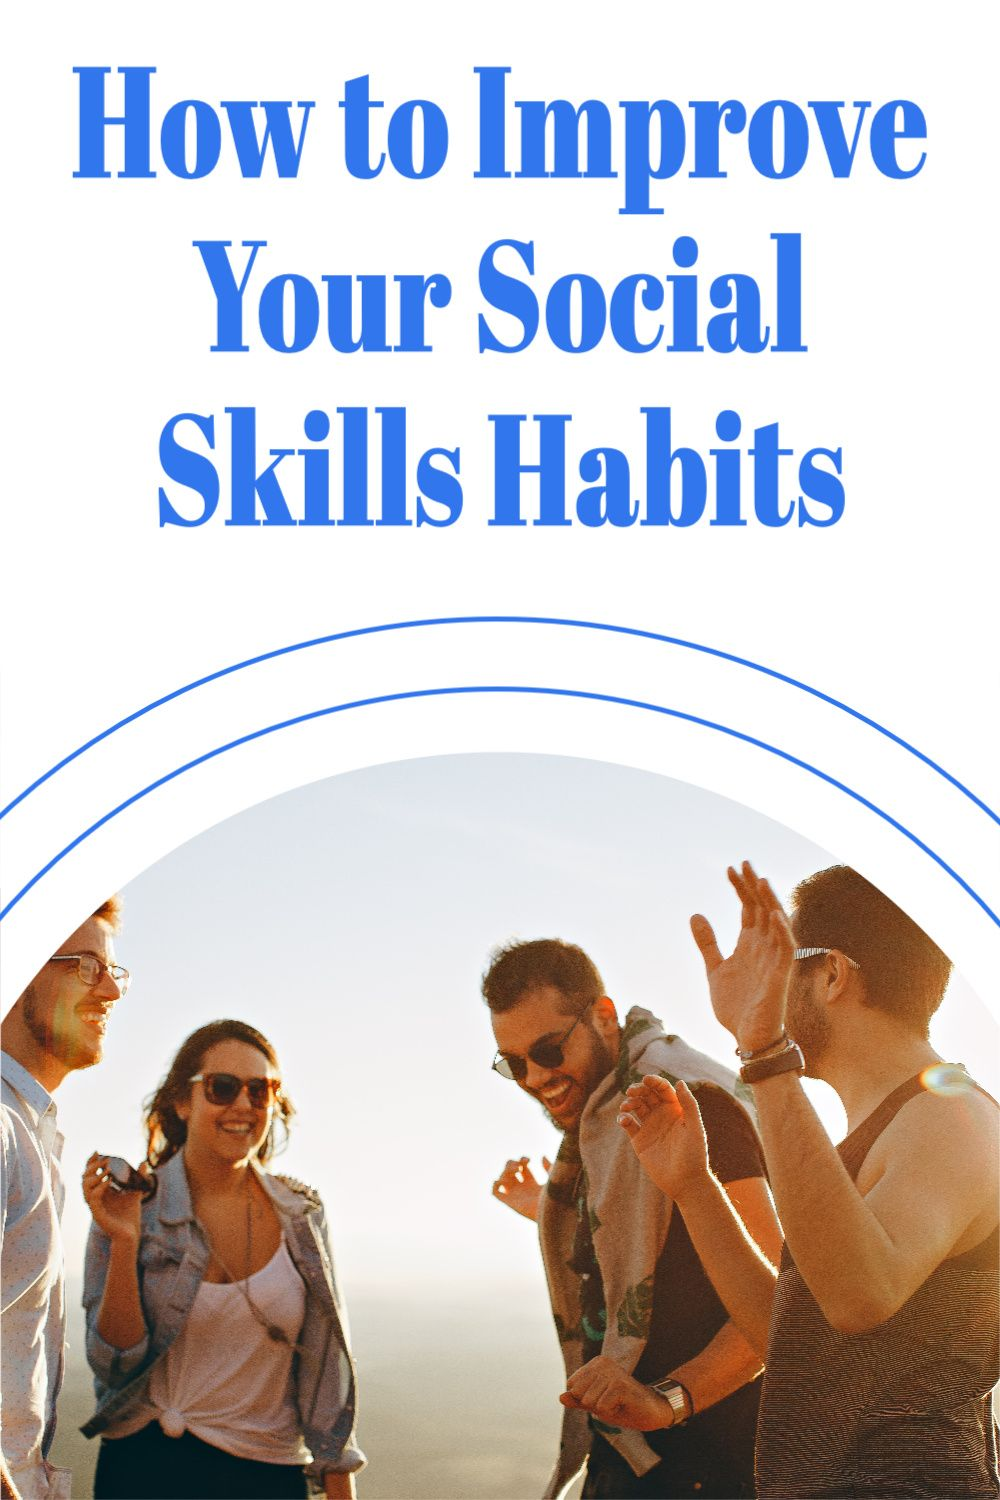 How to Improve Your Social Skills Habits